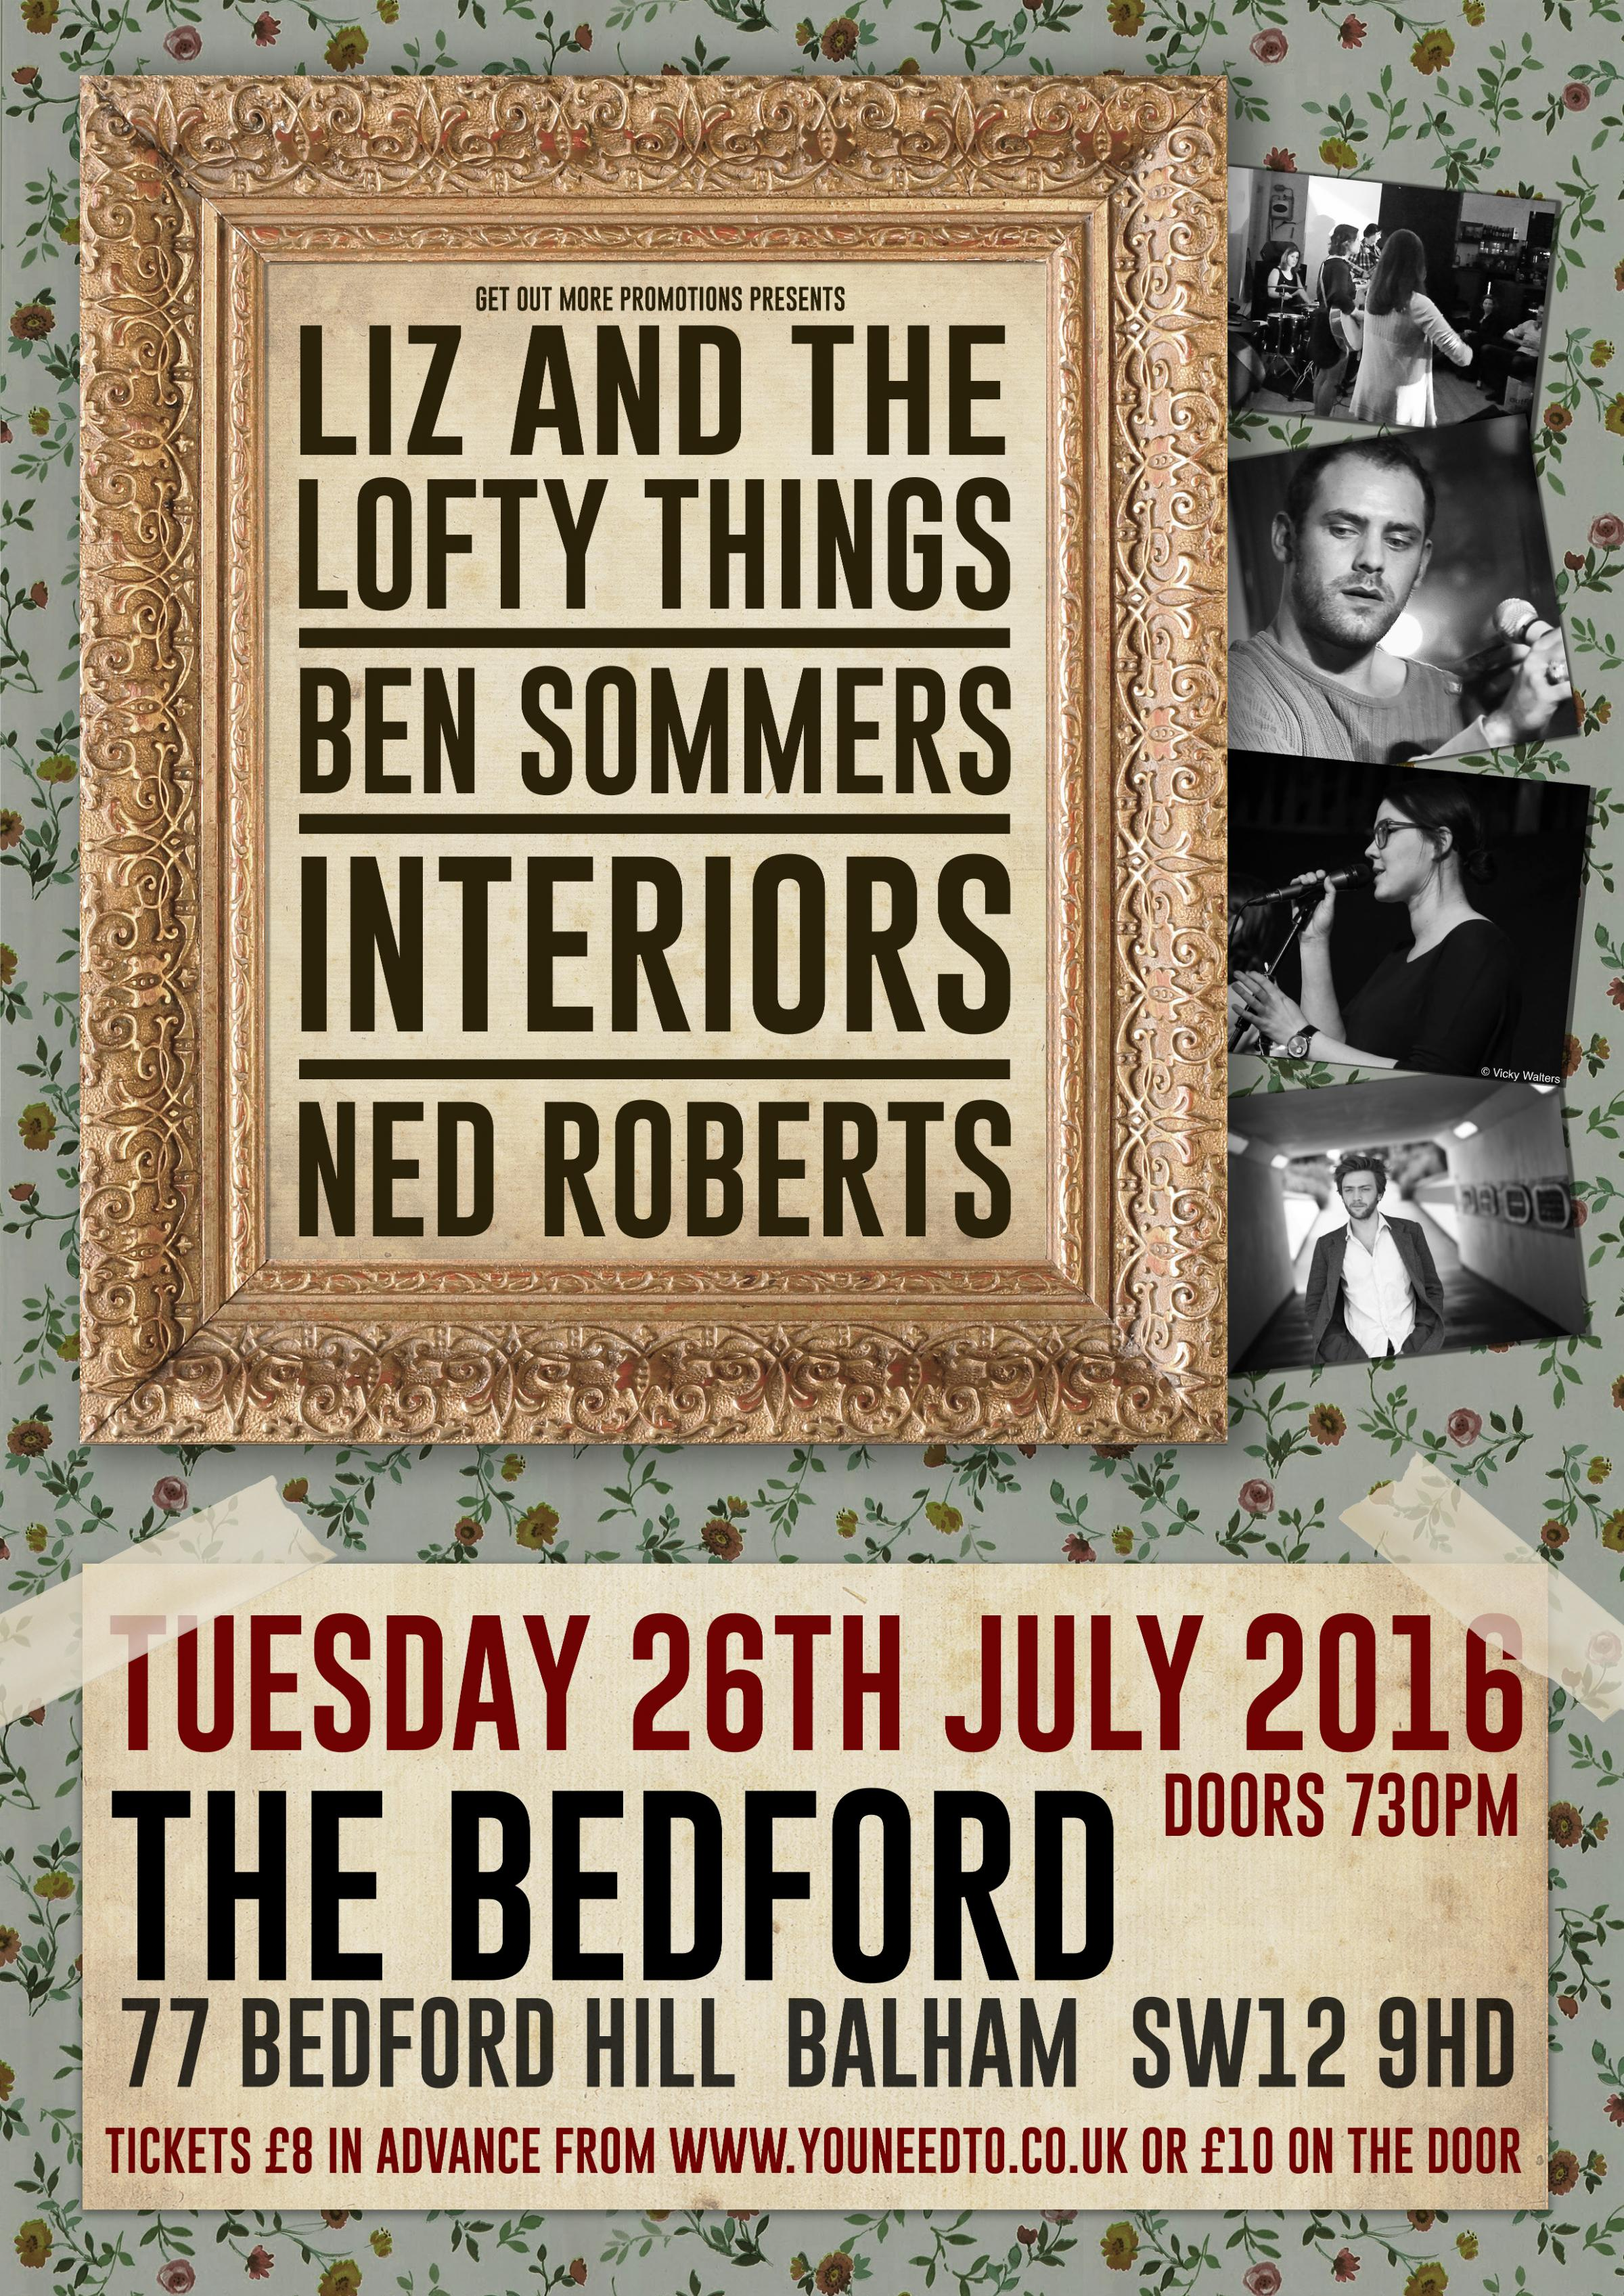 Liz & The Lofty Things + Ben Sommers + Interiors + Ned Roberts